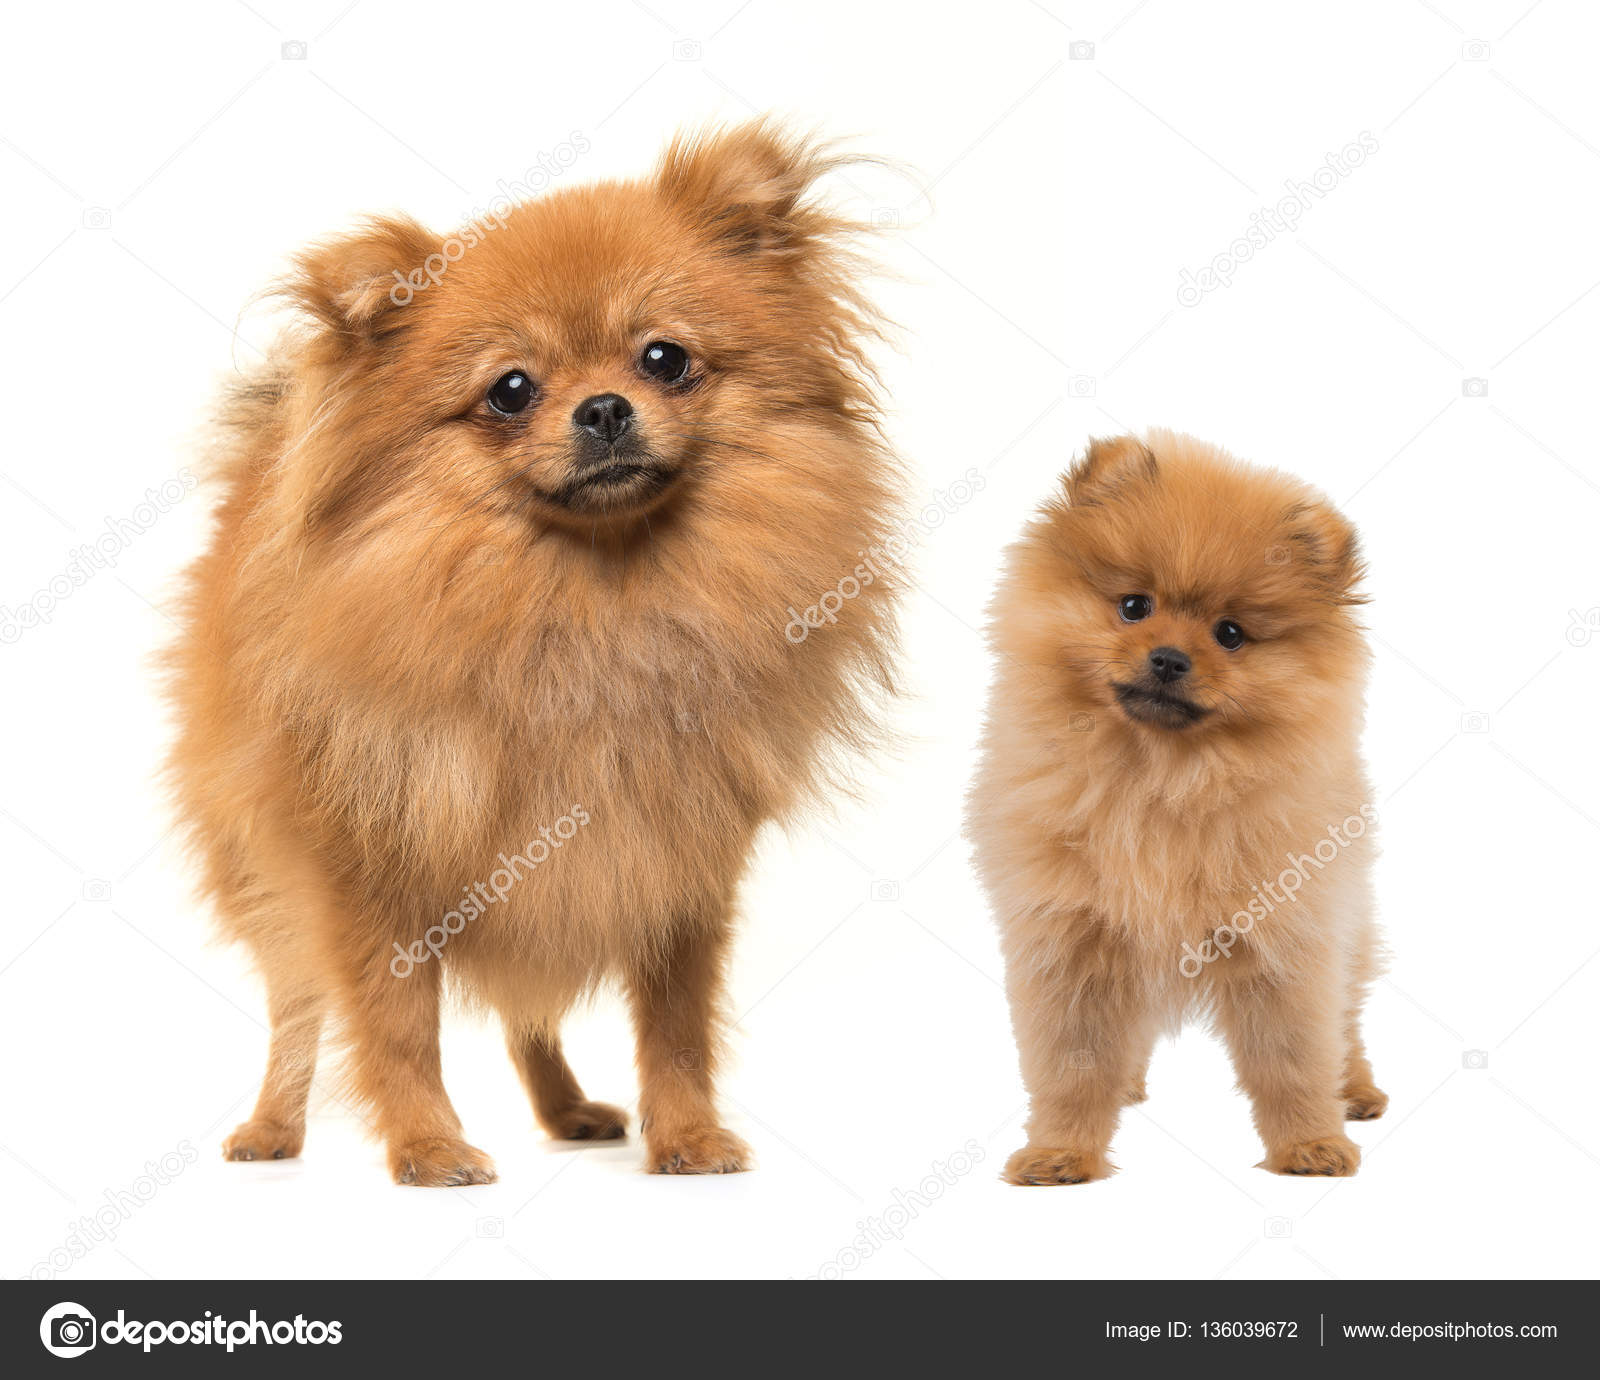 pomeranian adults adult and puppy standing pomeranian dogs stock photo 3477